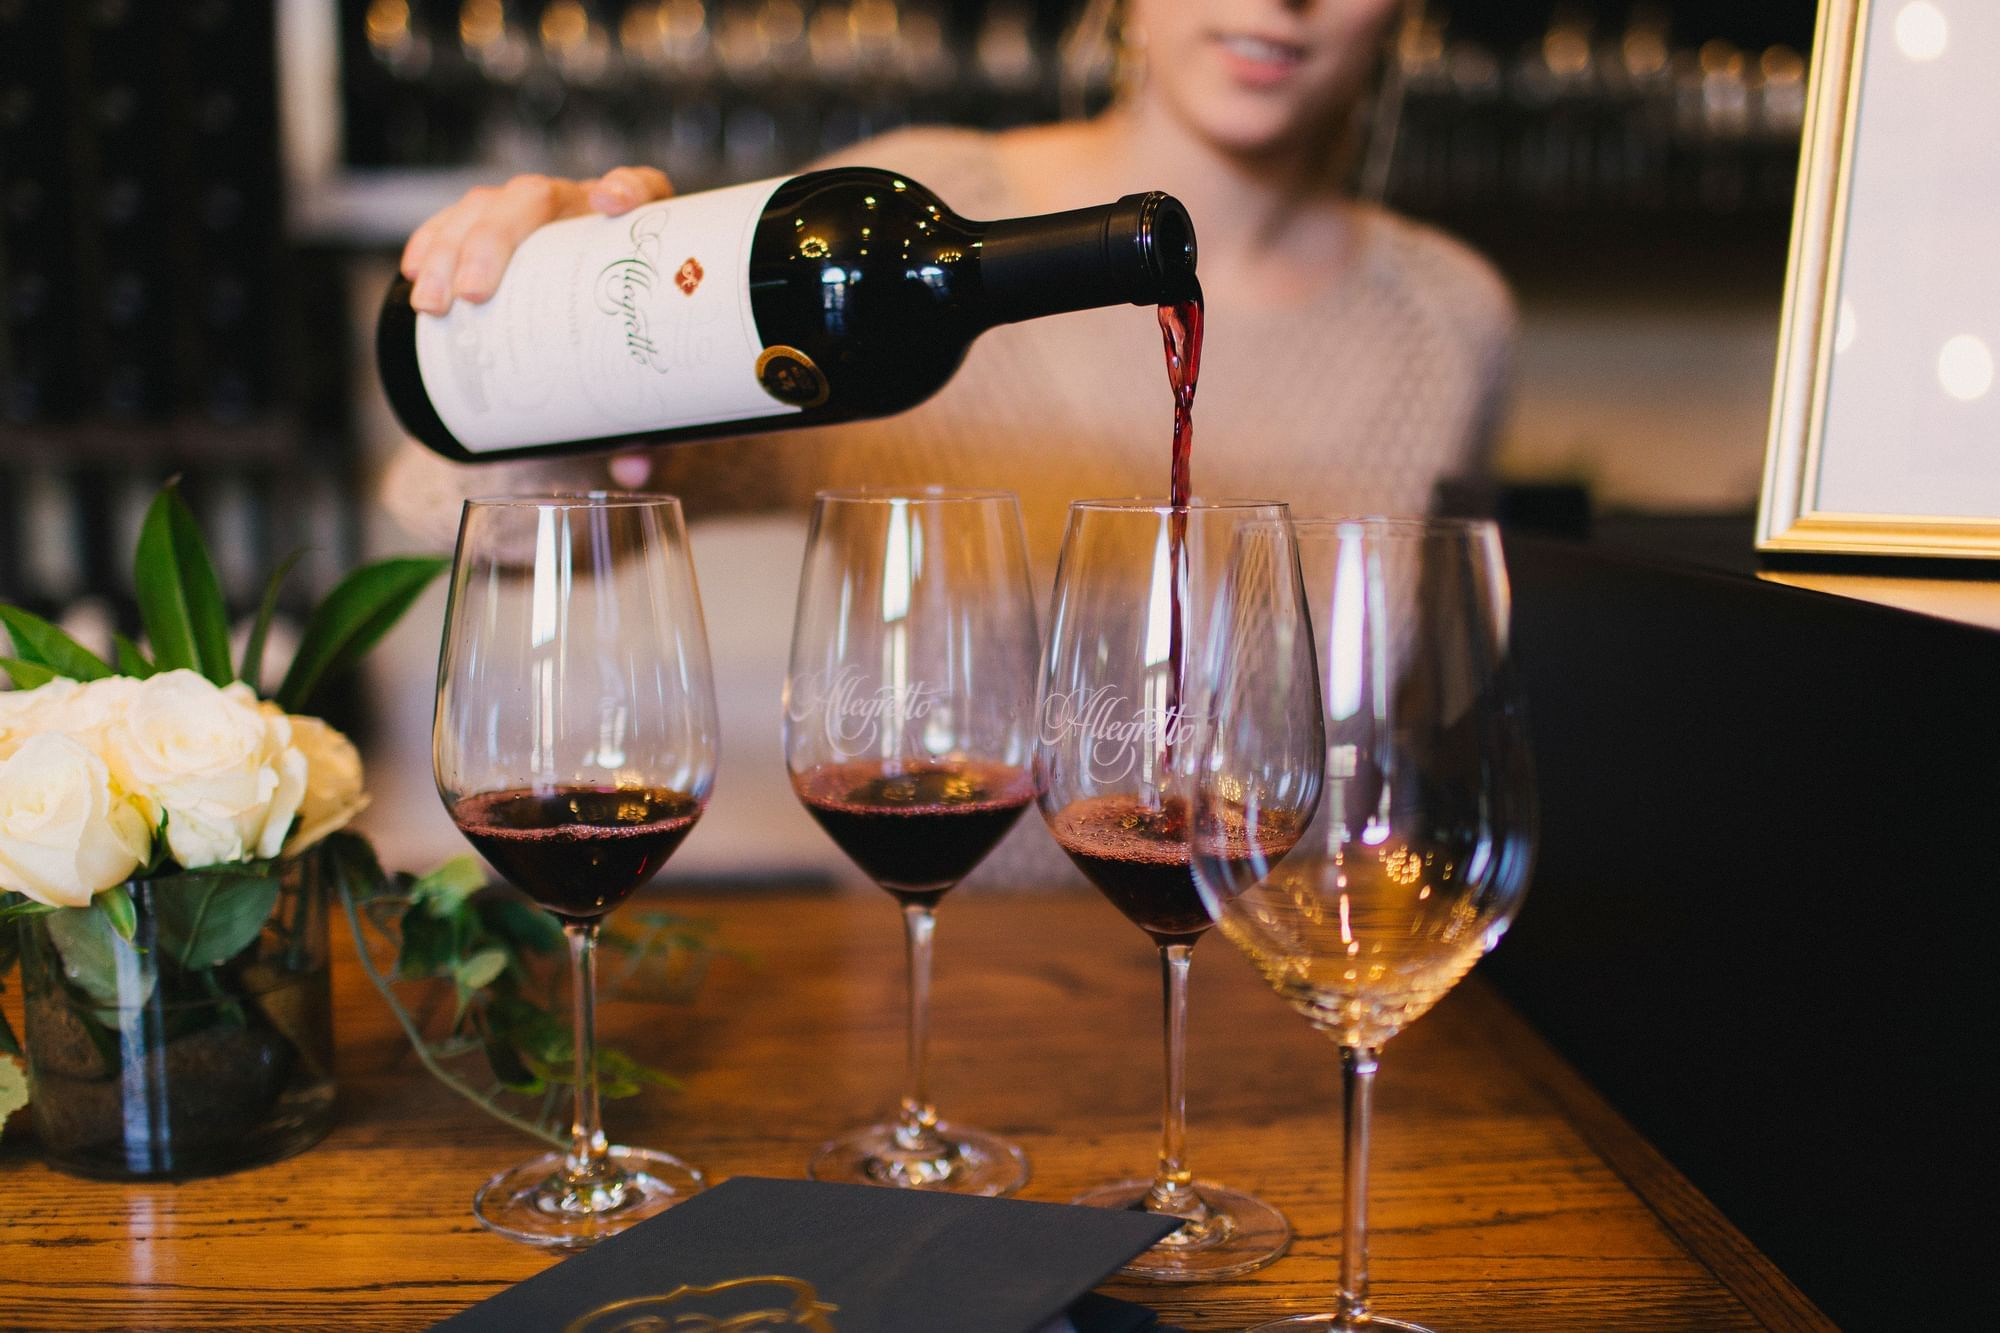 Four wine glasses lined up.  Woman pouring red wine.